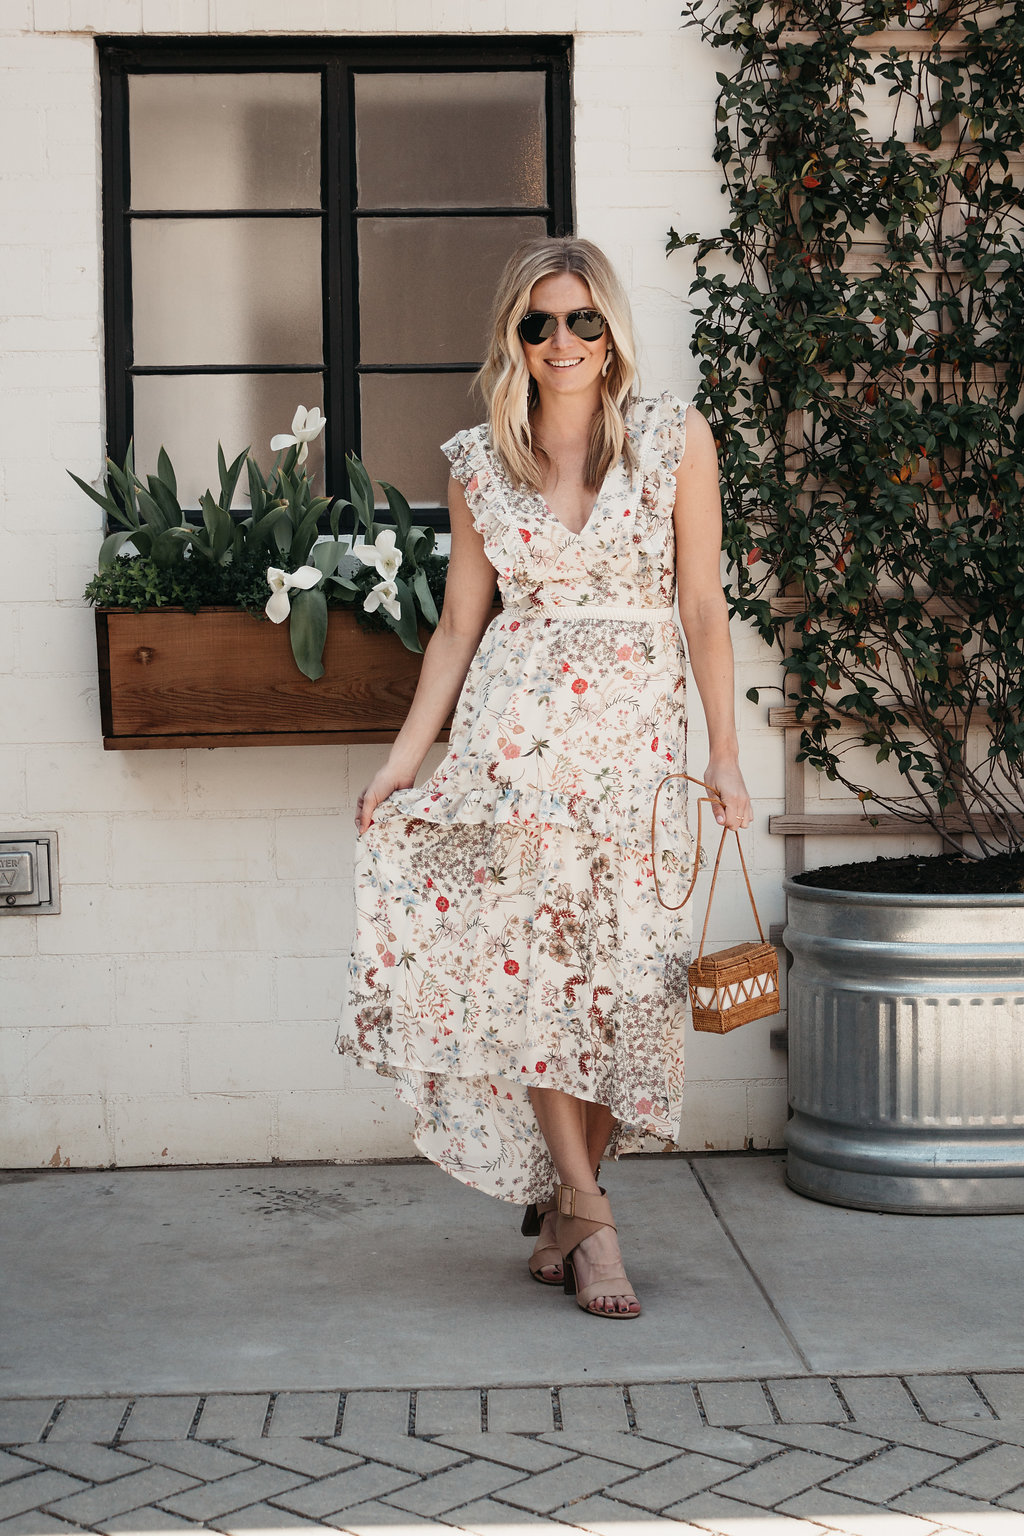 One Small Blonde is featuring a floral dress